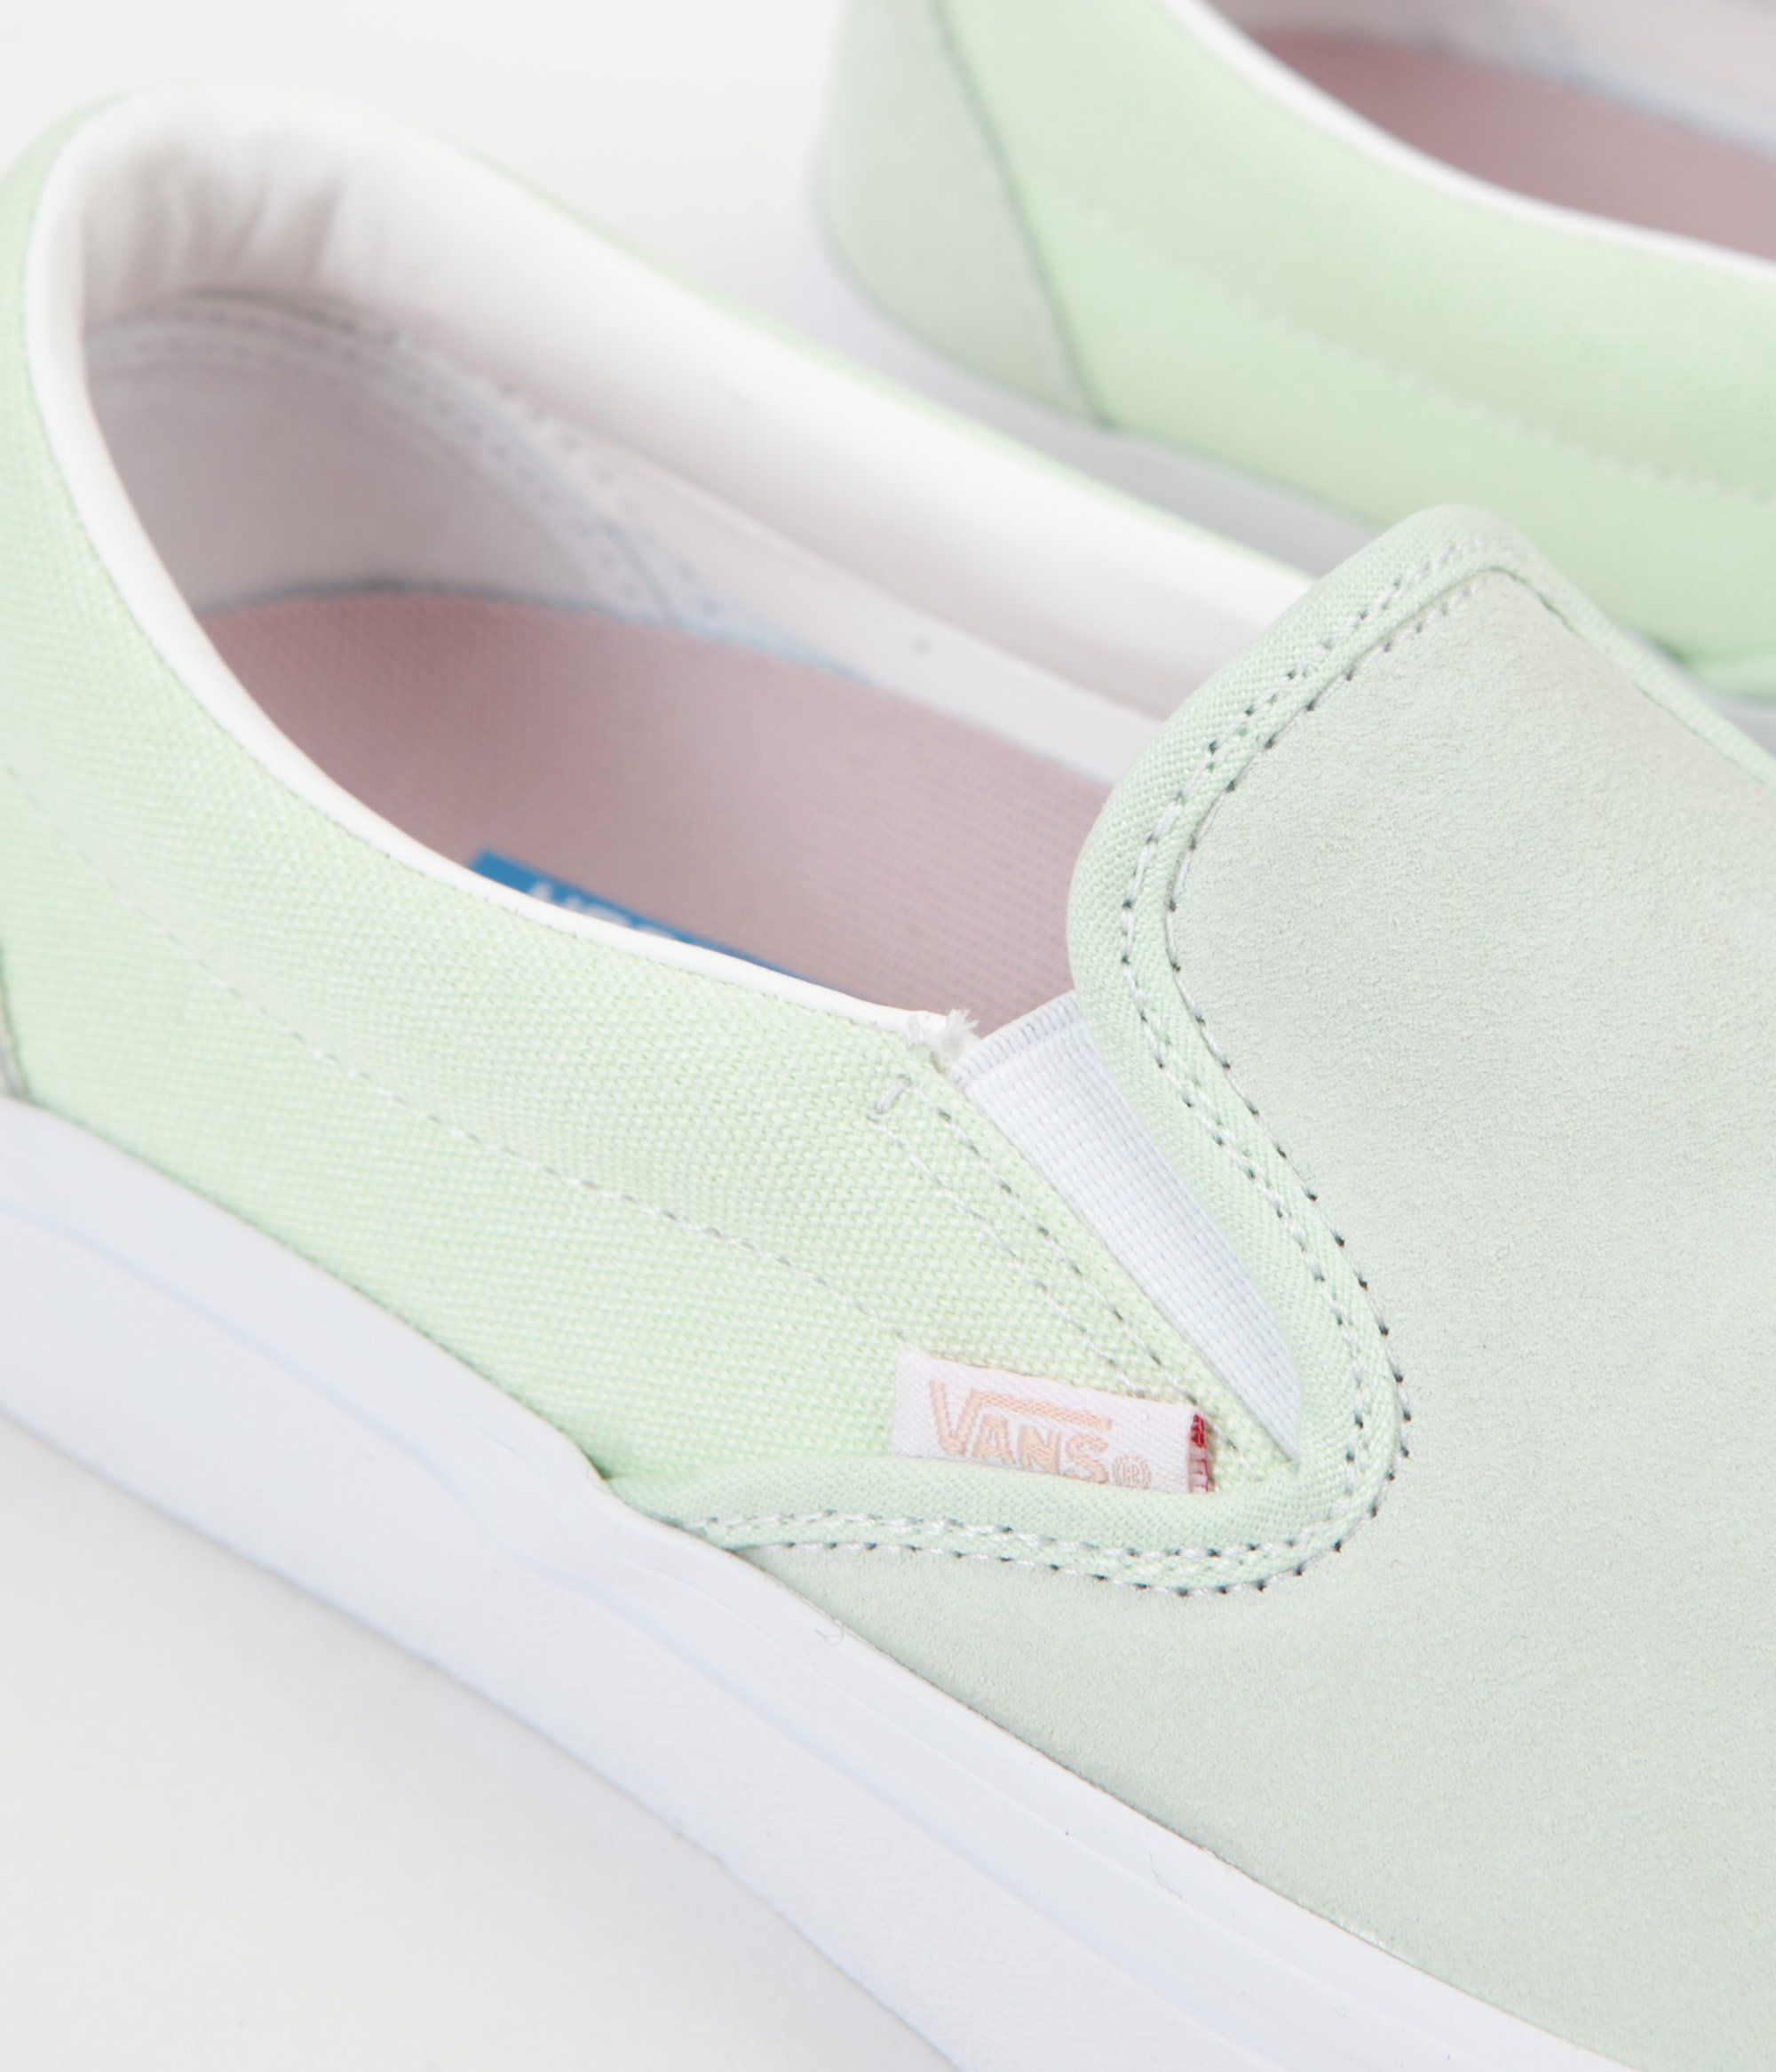 Vans Slip On Pro Shoes Ambrosia White | dhiraaa's pins